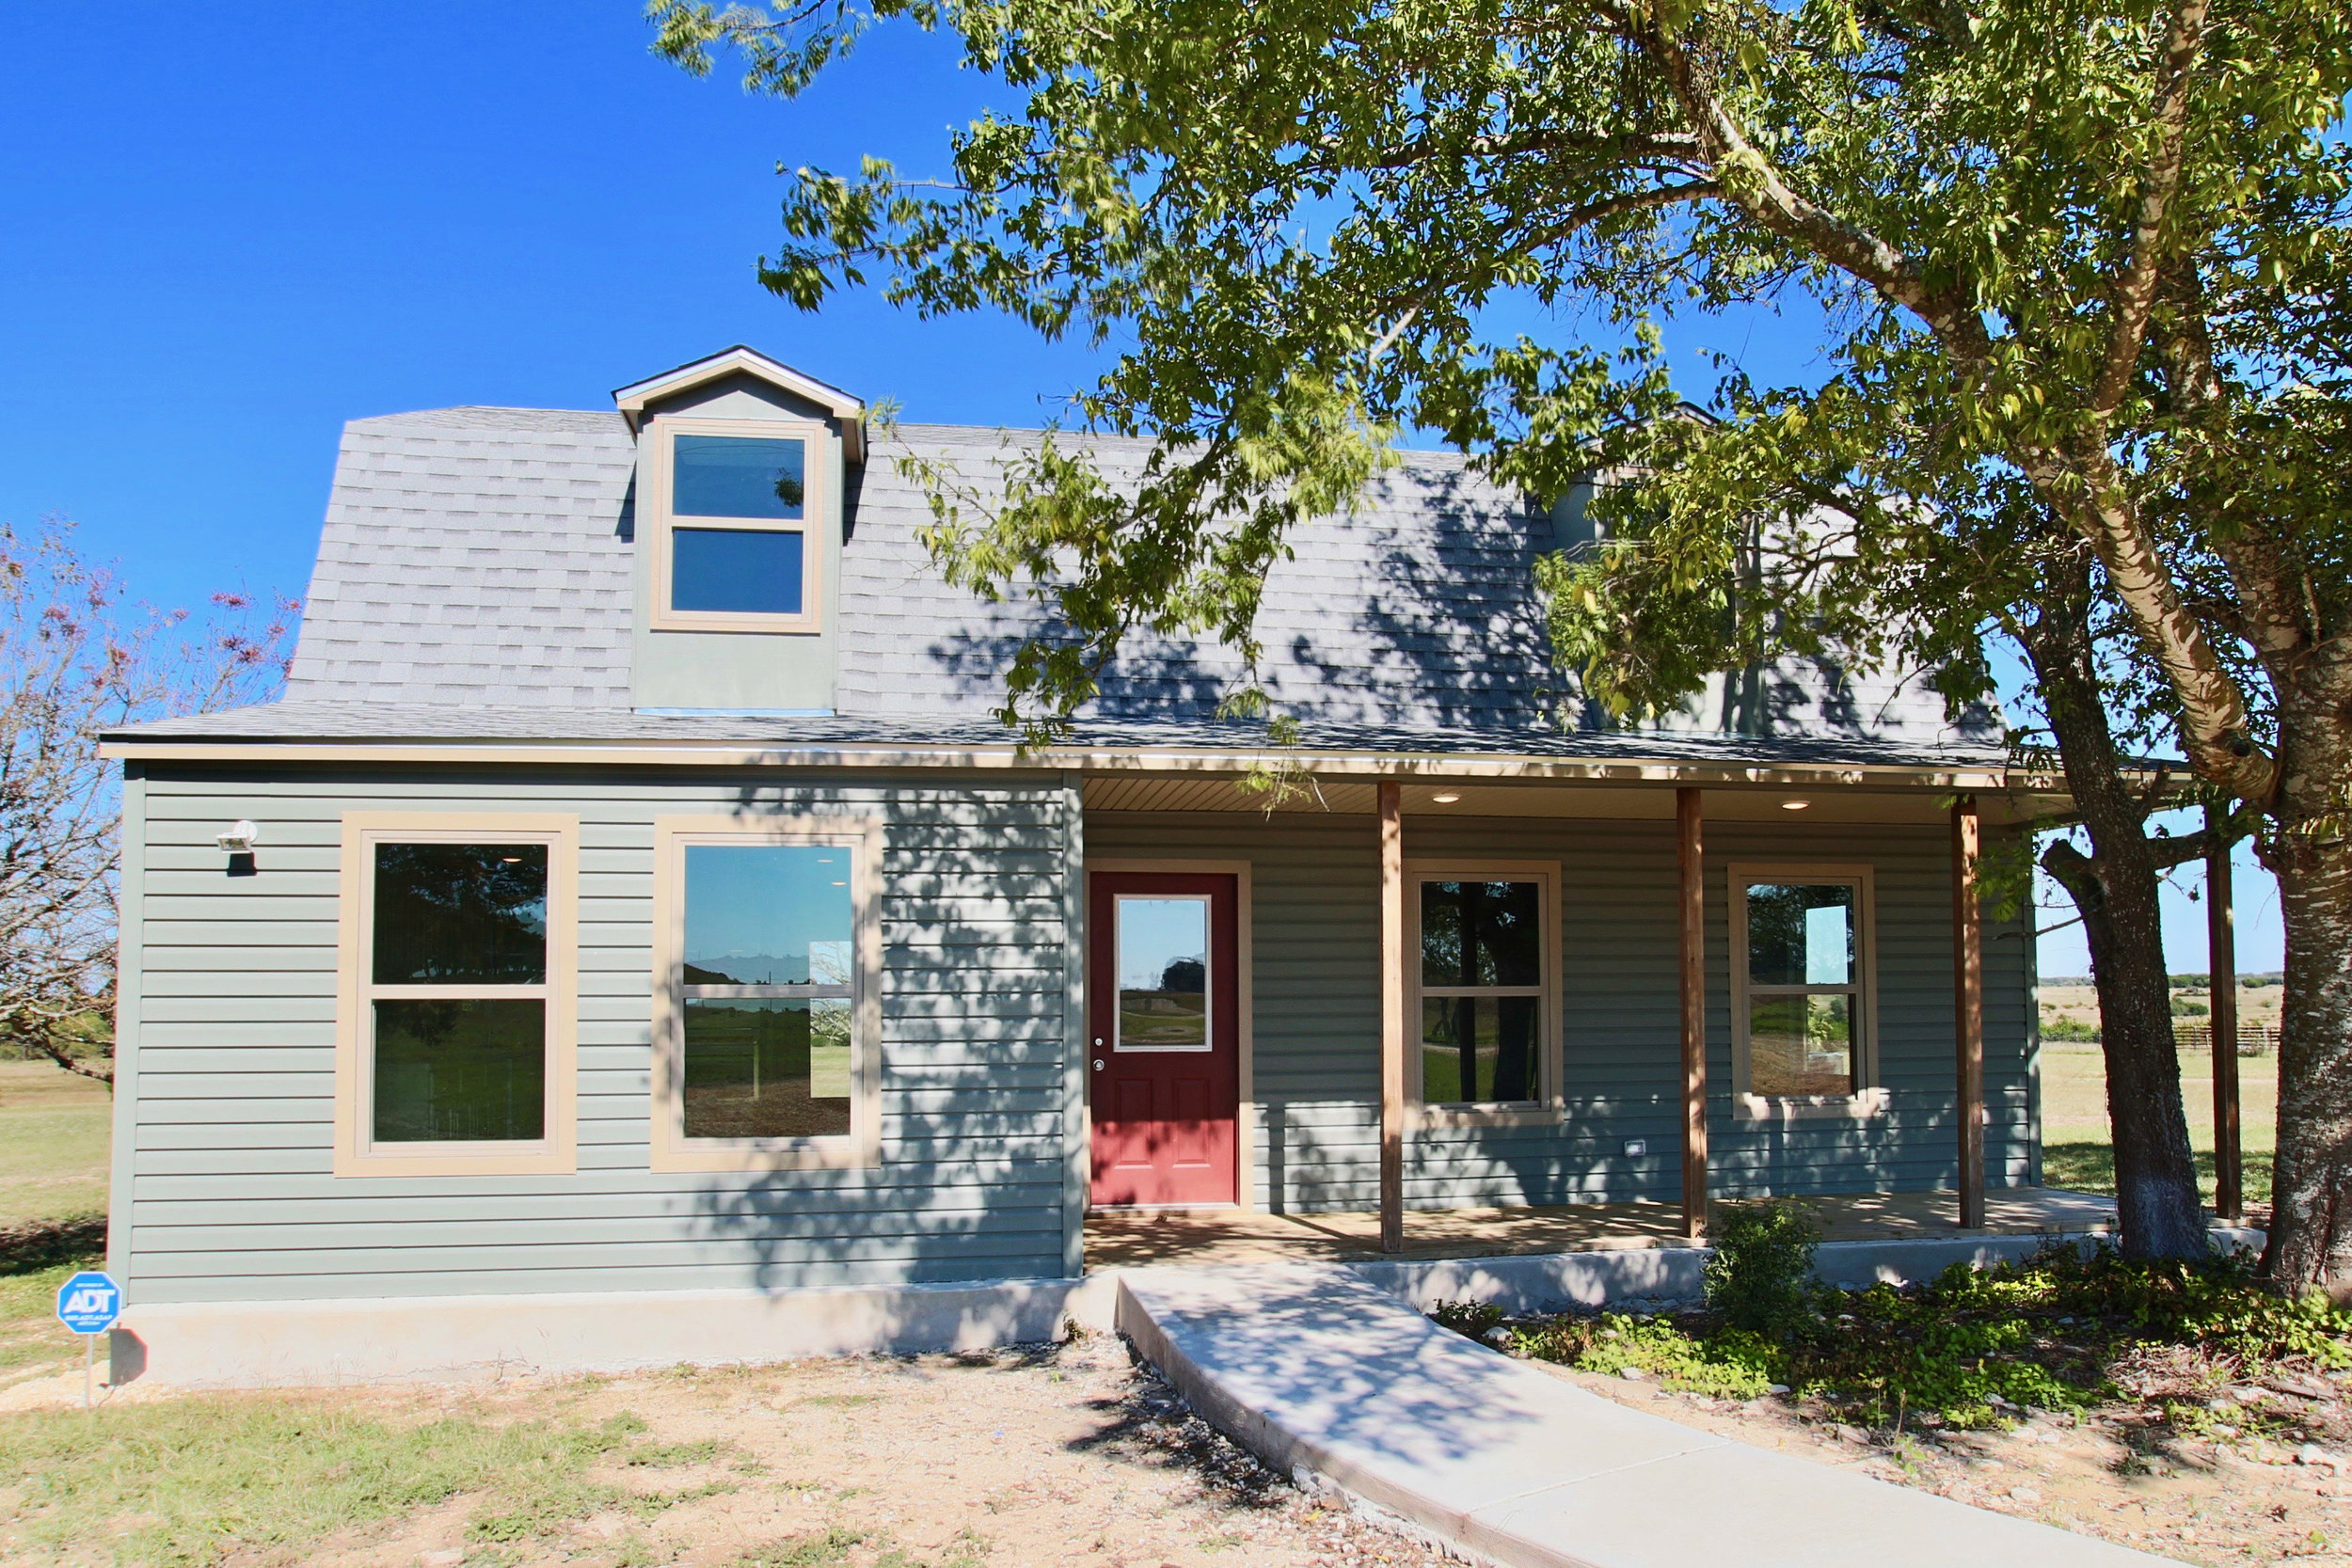 625 County Road 225 | Sat 2-4pm | $560,000 | Listed by Priscilla Hanson